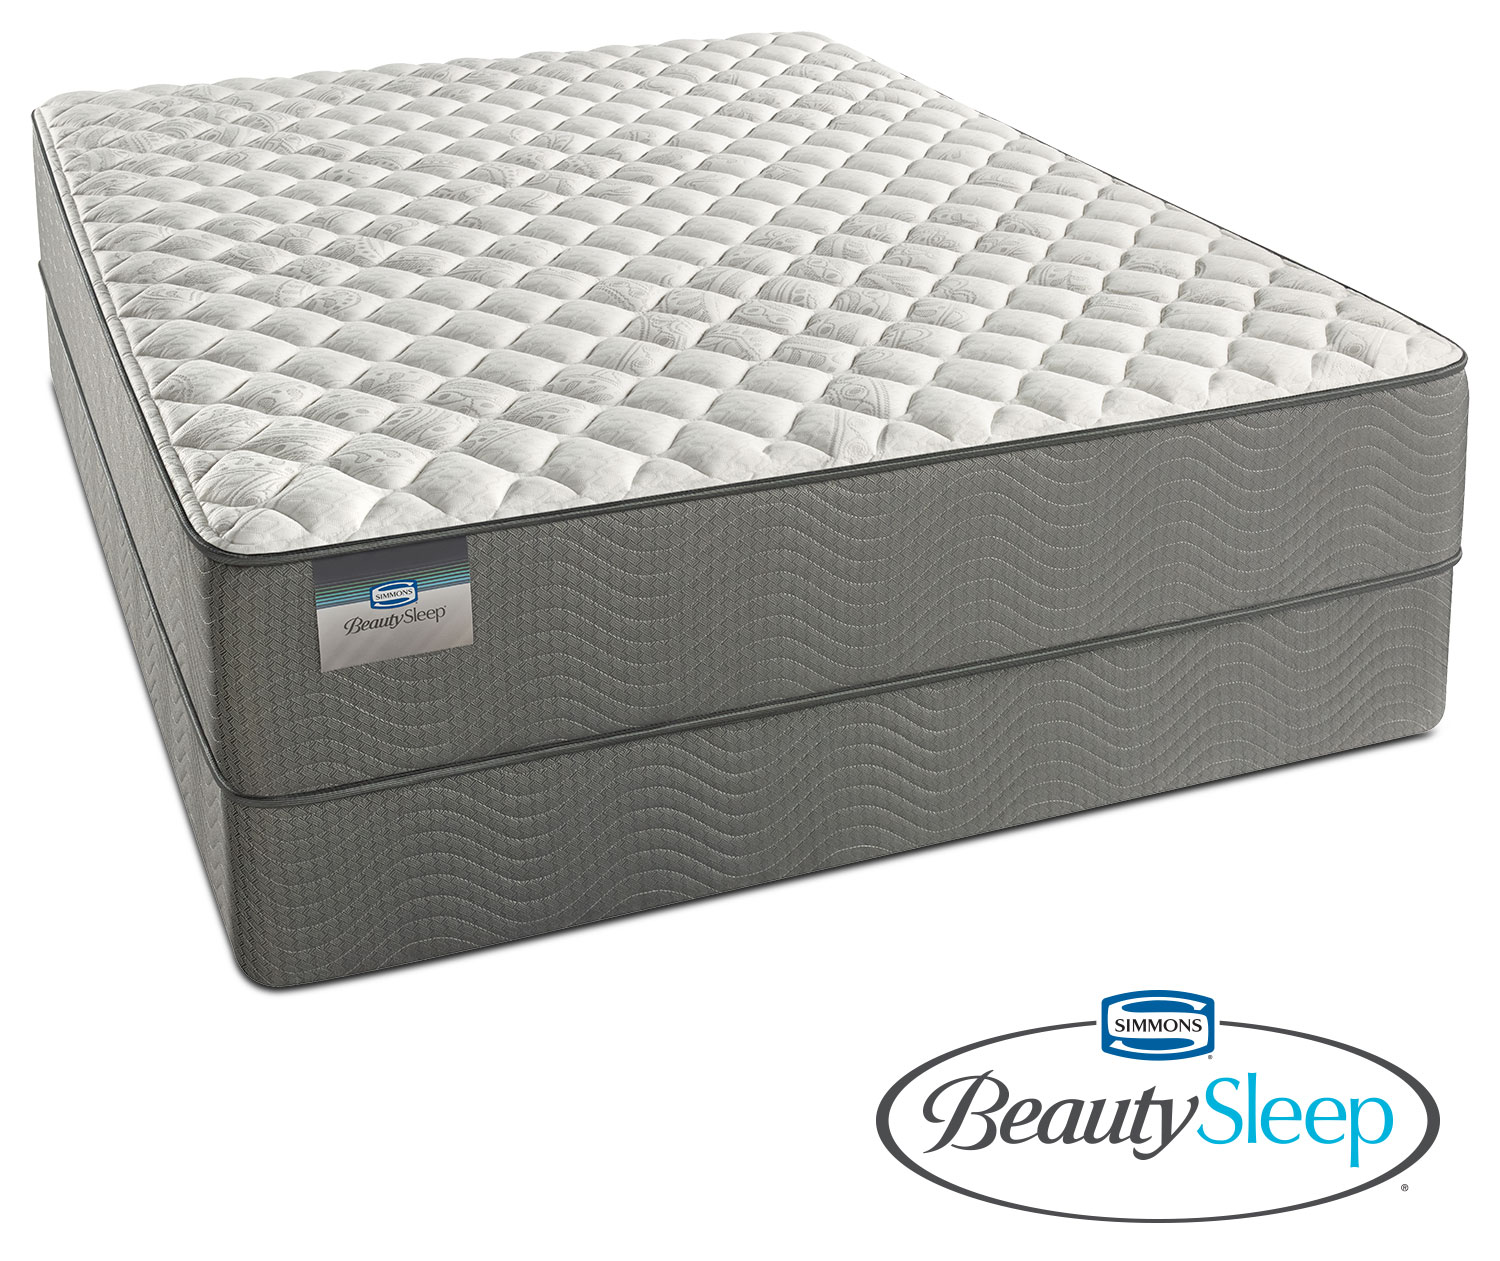 Mattresses and Bedding - Alpine White Firm California King Mattress and Split Foundation Set